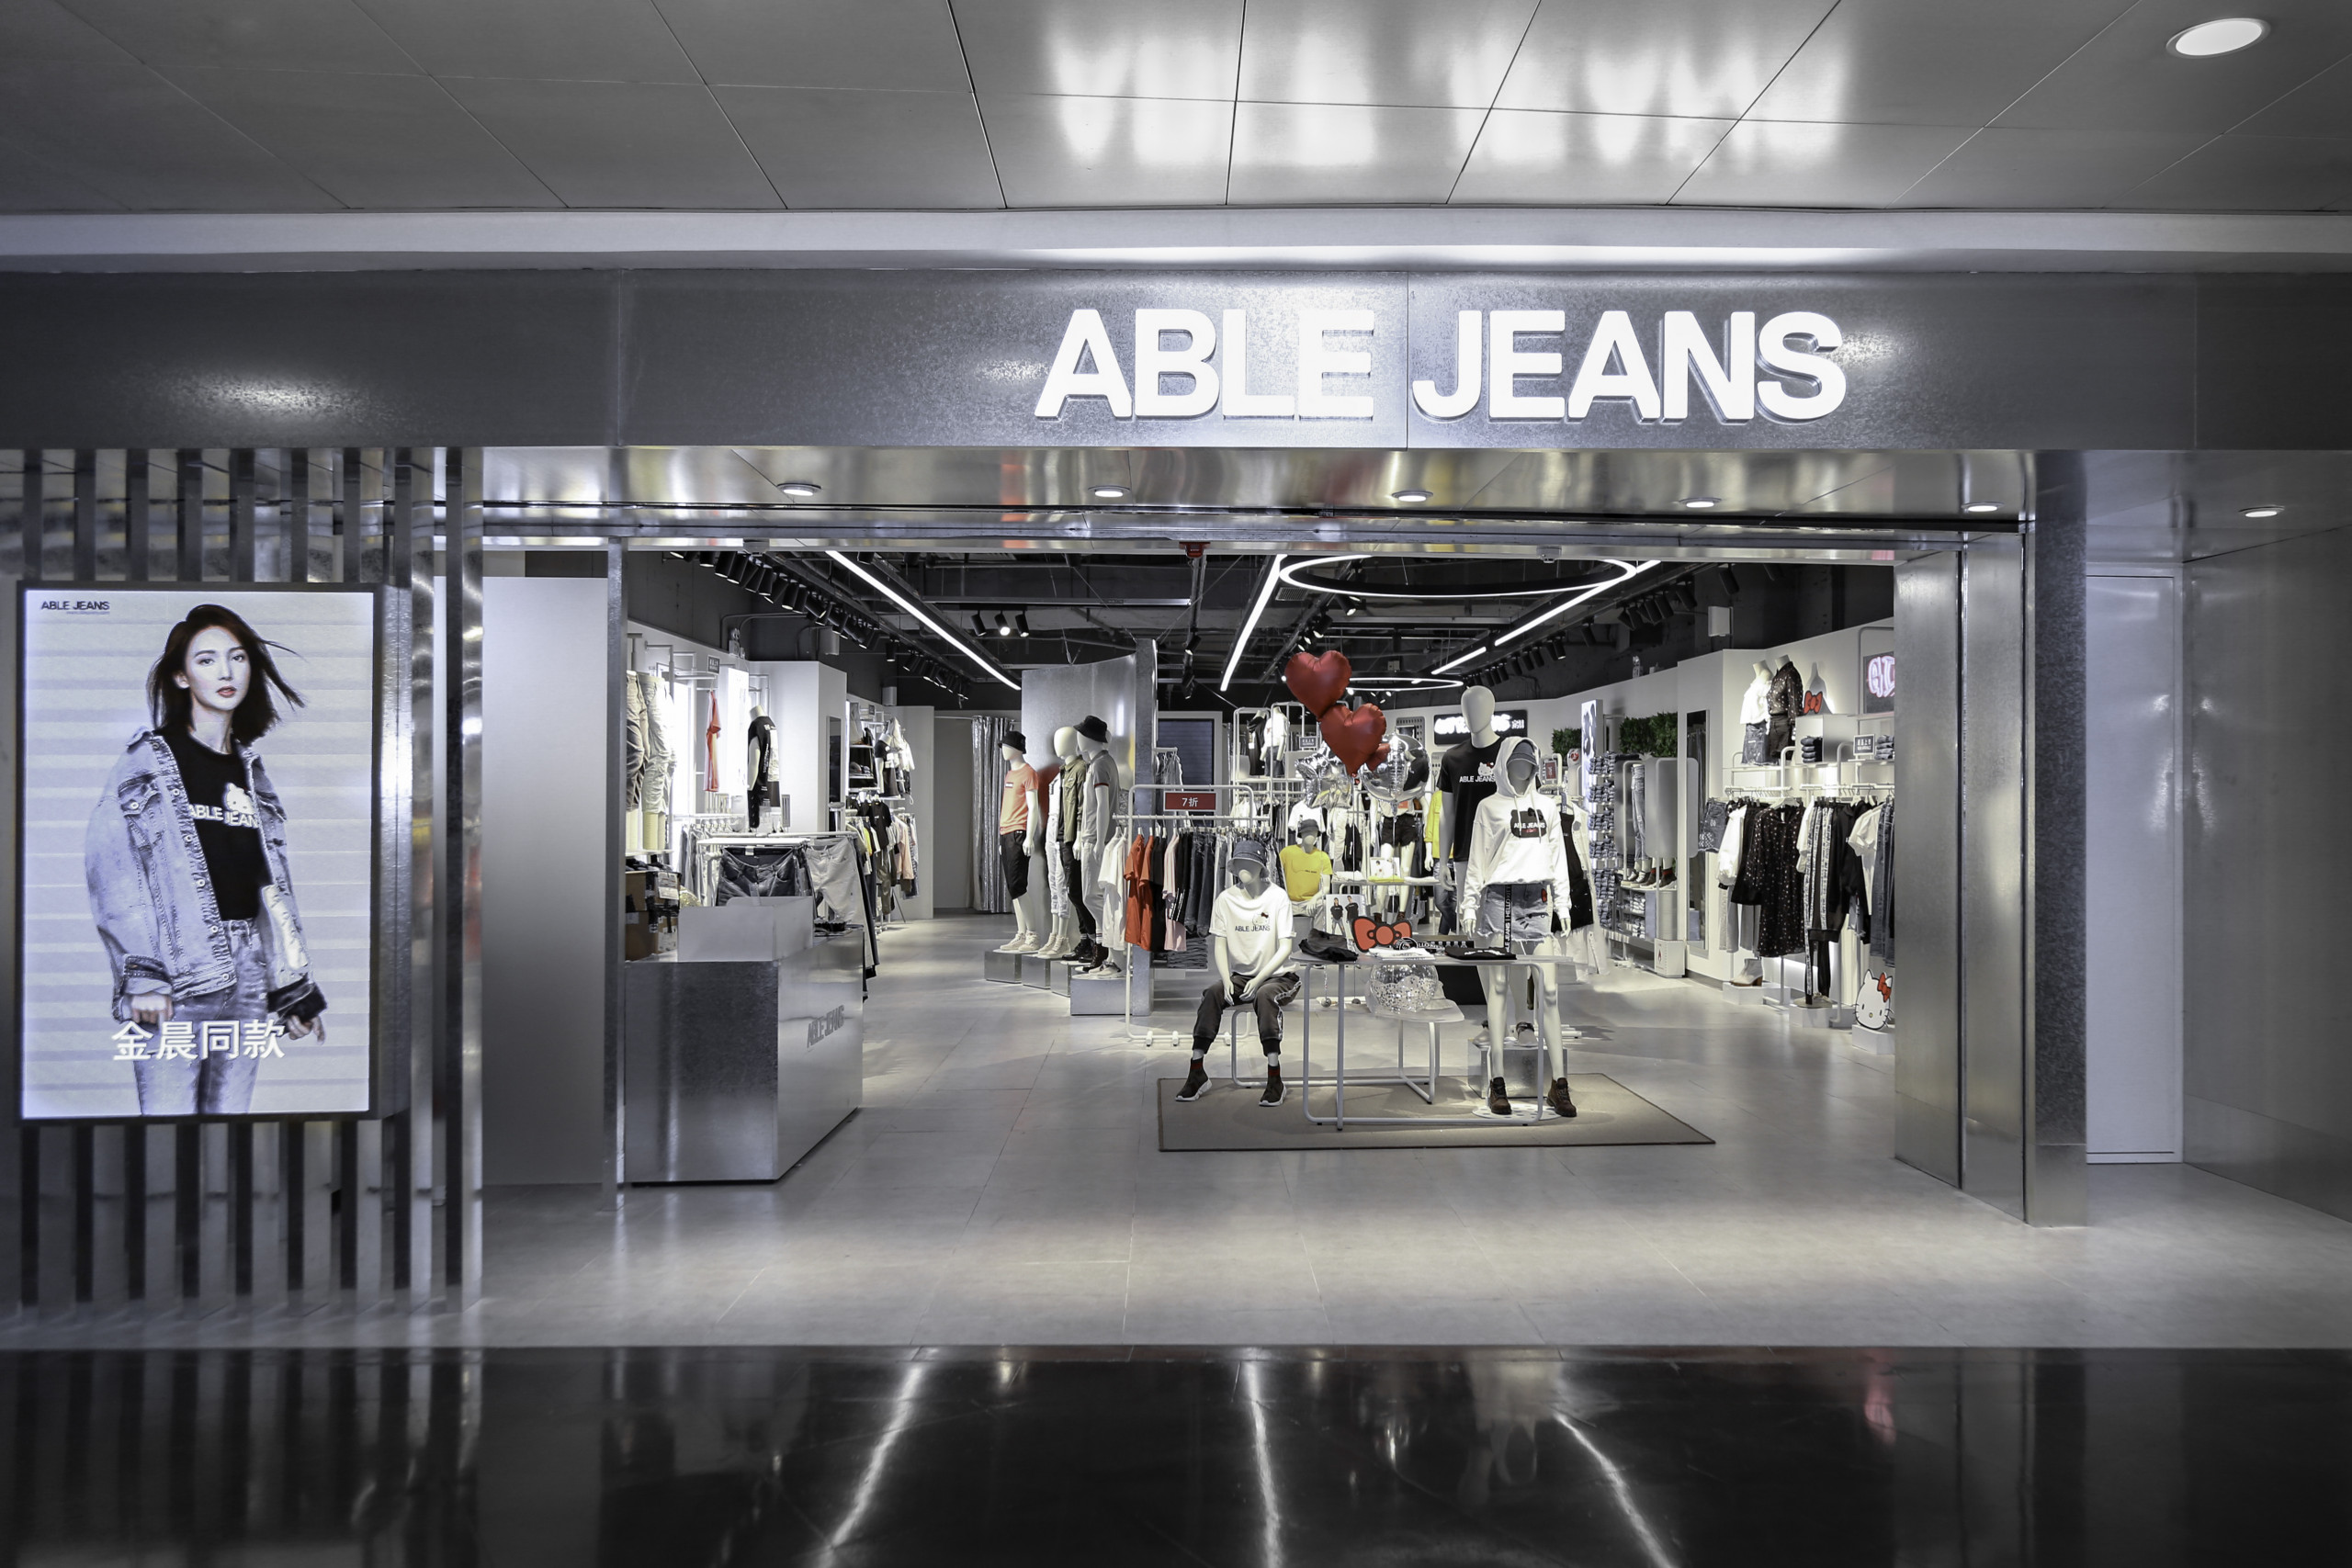 Able jeans store china entrance